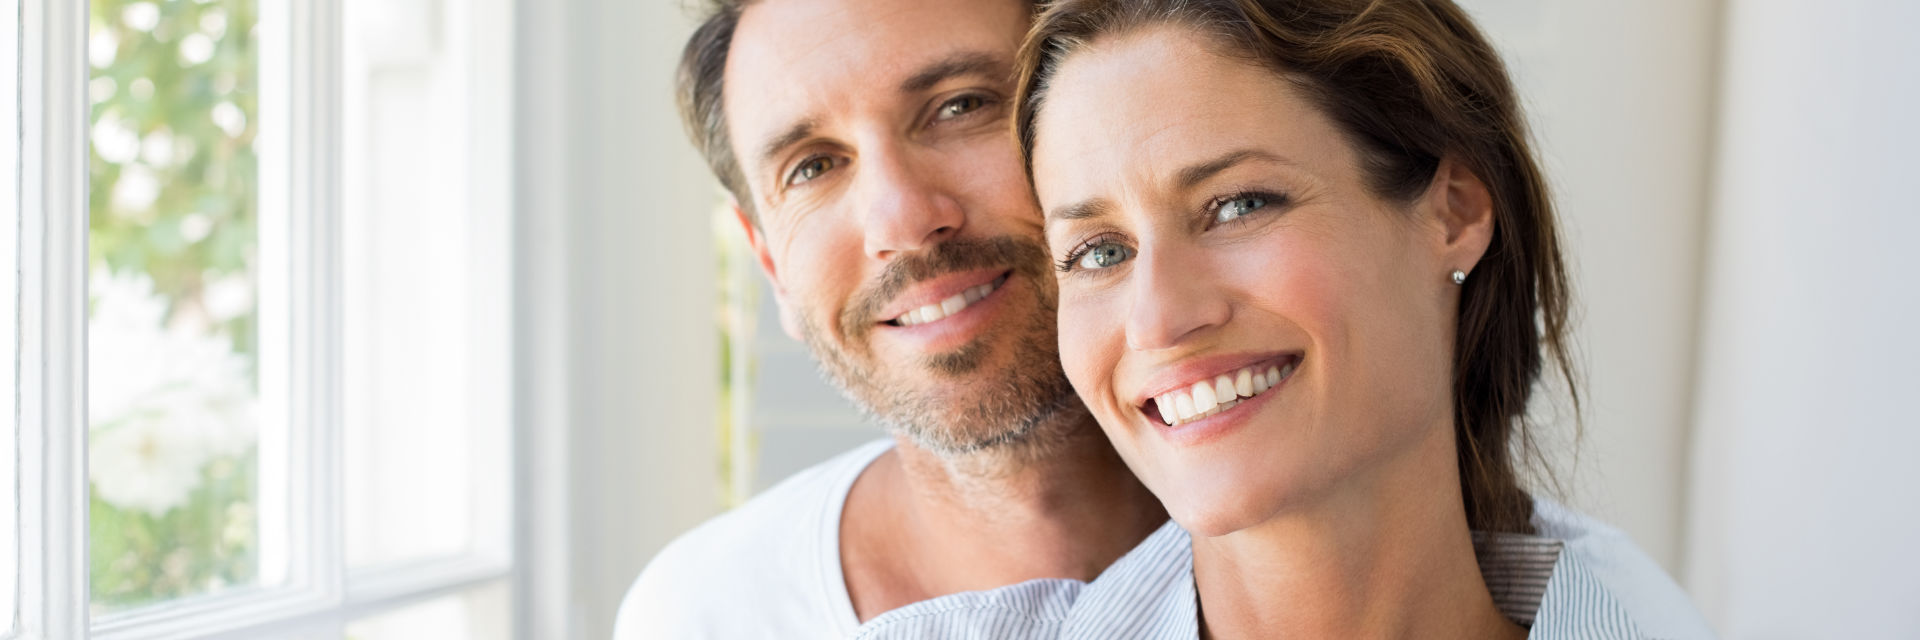 Happy middle-aged couple showing their nice healthy teeth in their smiles.